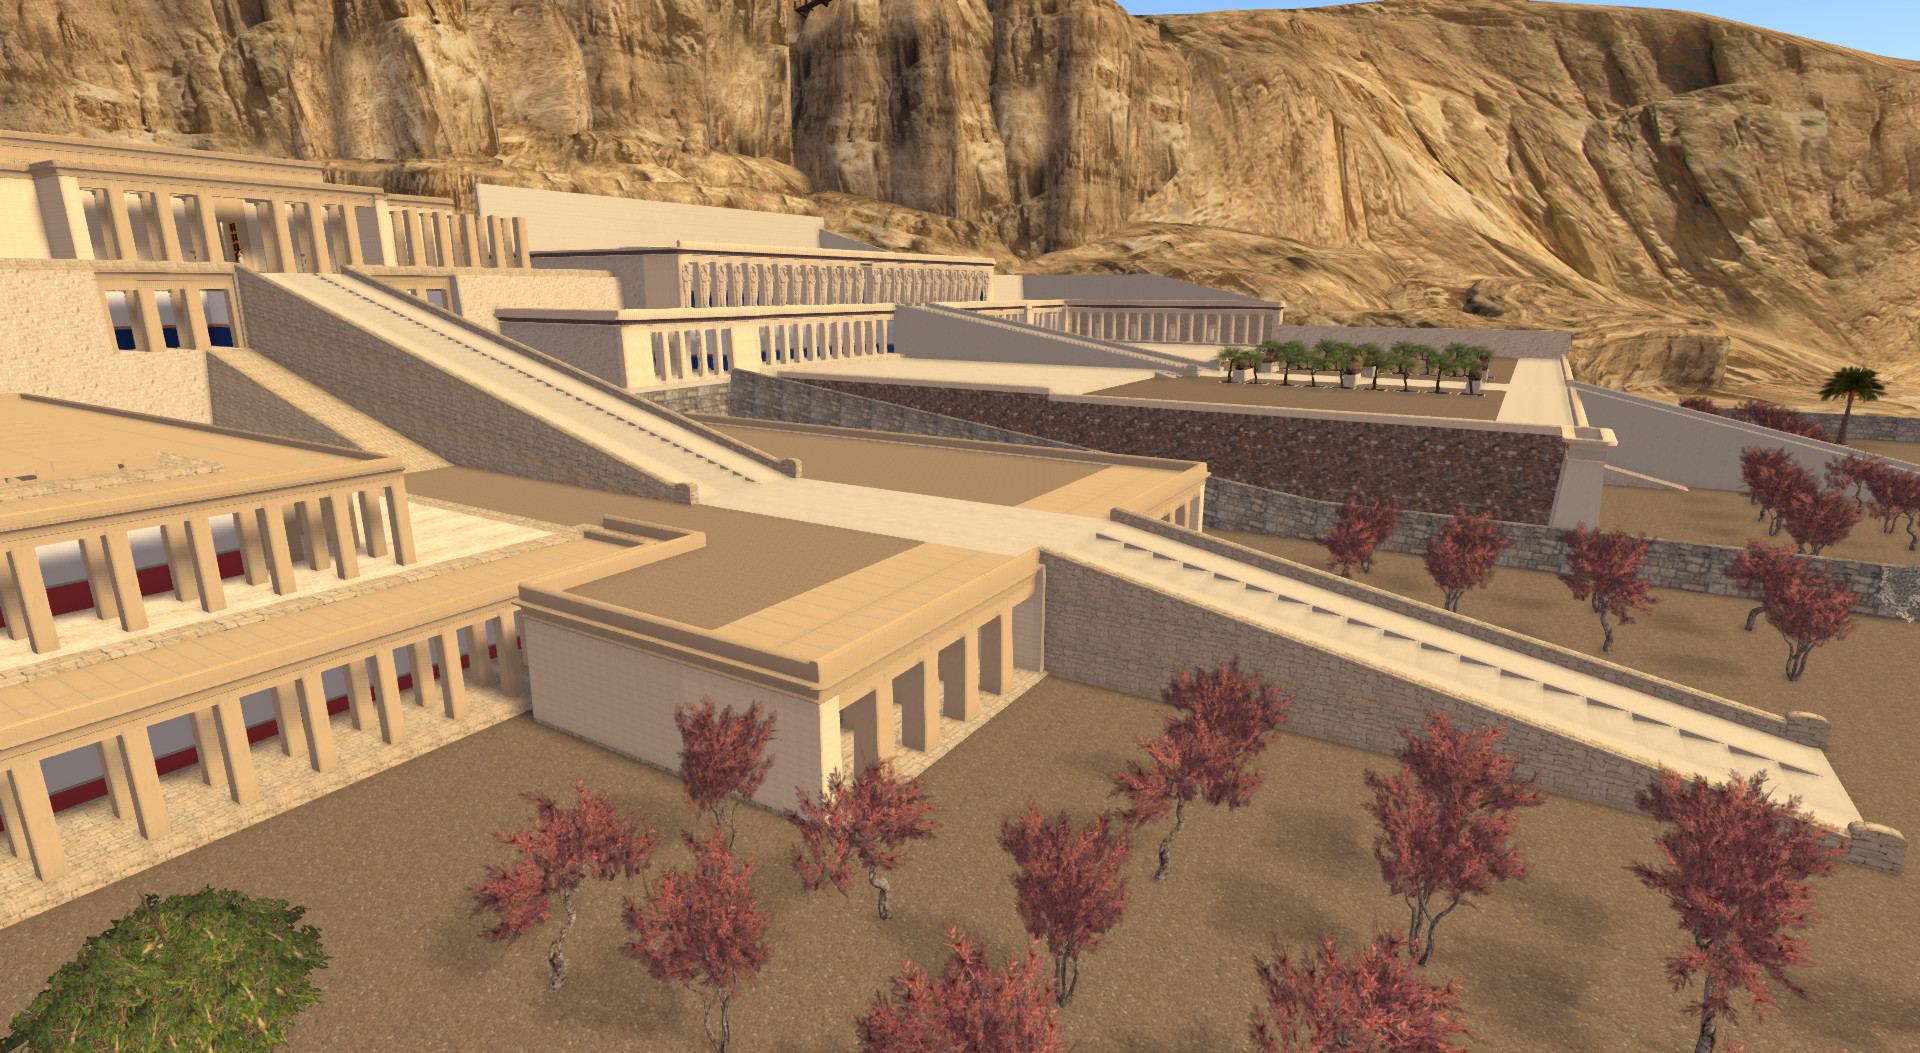 Thutmose III temple, reconstruction due to new insights from Campaigns 2012-2013